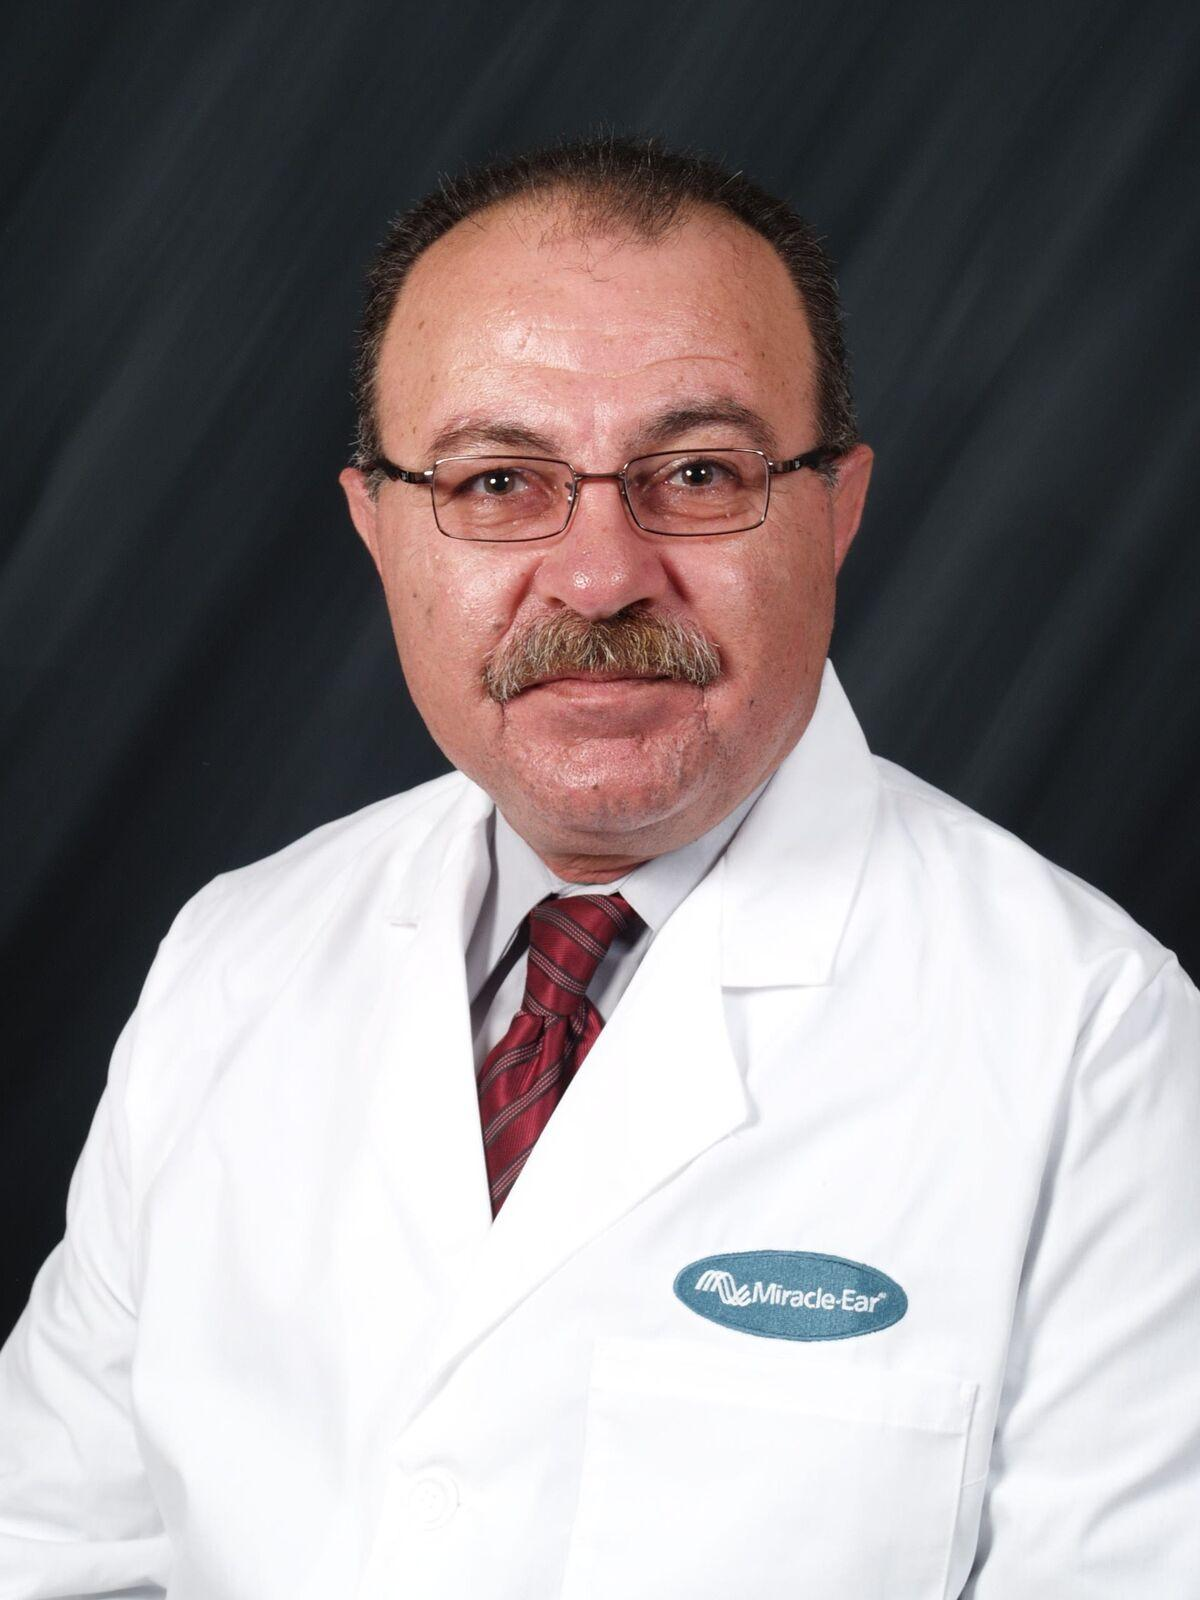 Profile Photo of Nabil Al-Muhtaseb - Board Certified Audiologist